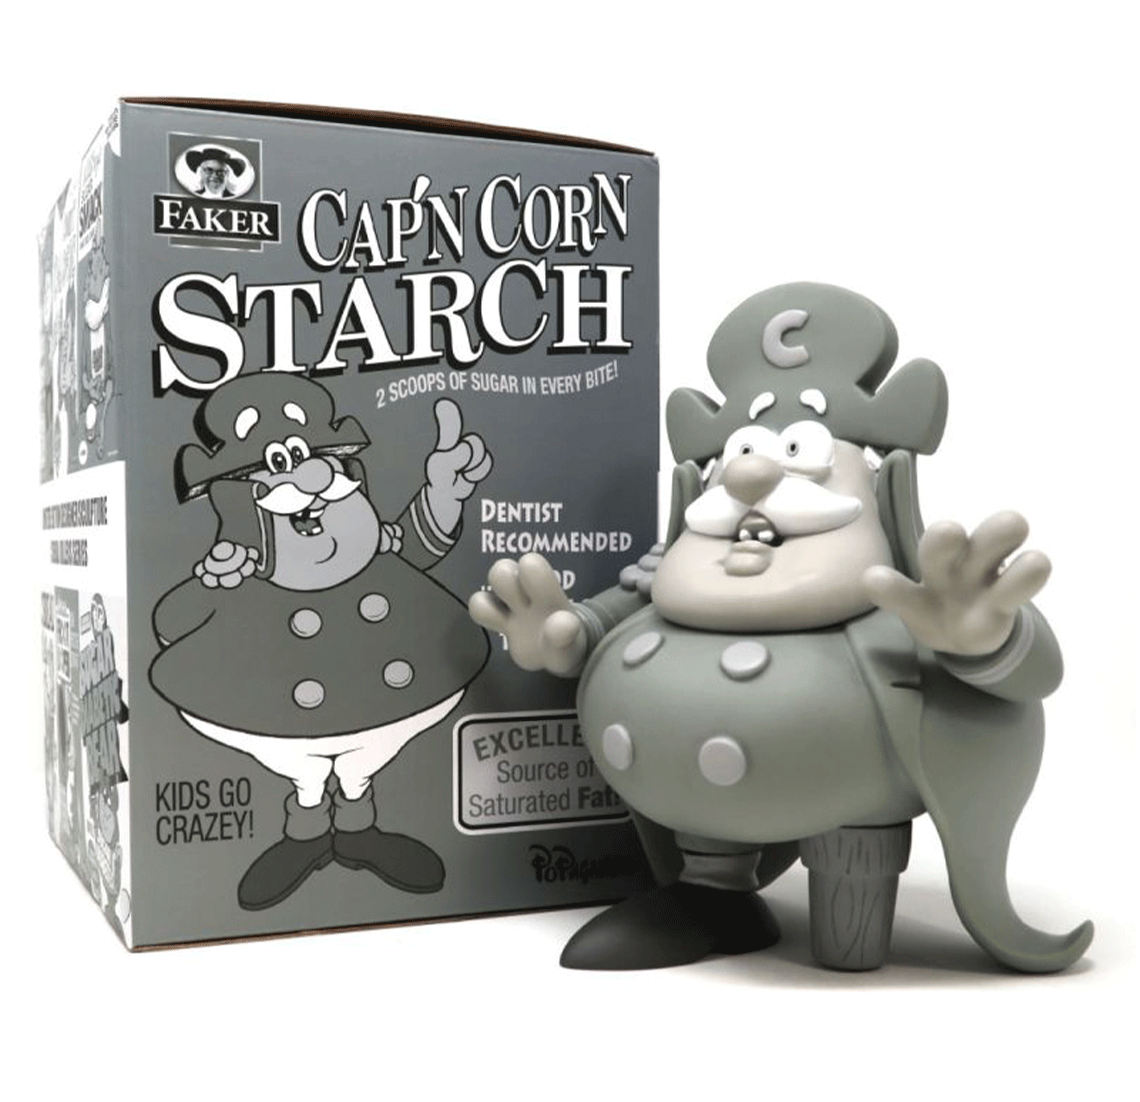 Cap'n Corn Starch Monotone Edition by Ron English